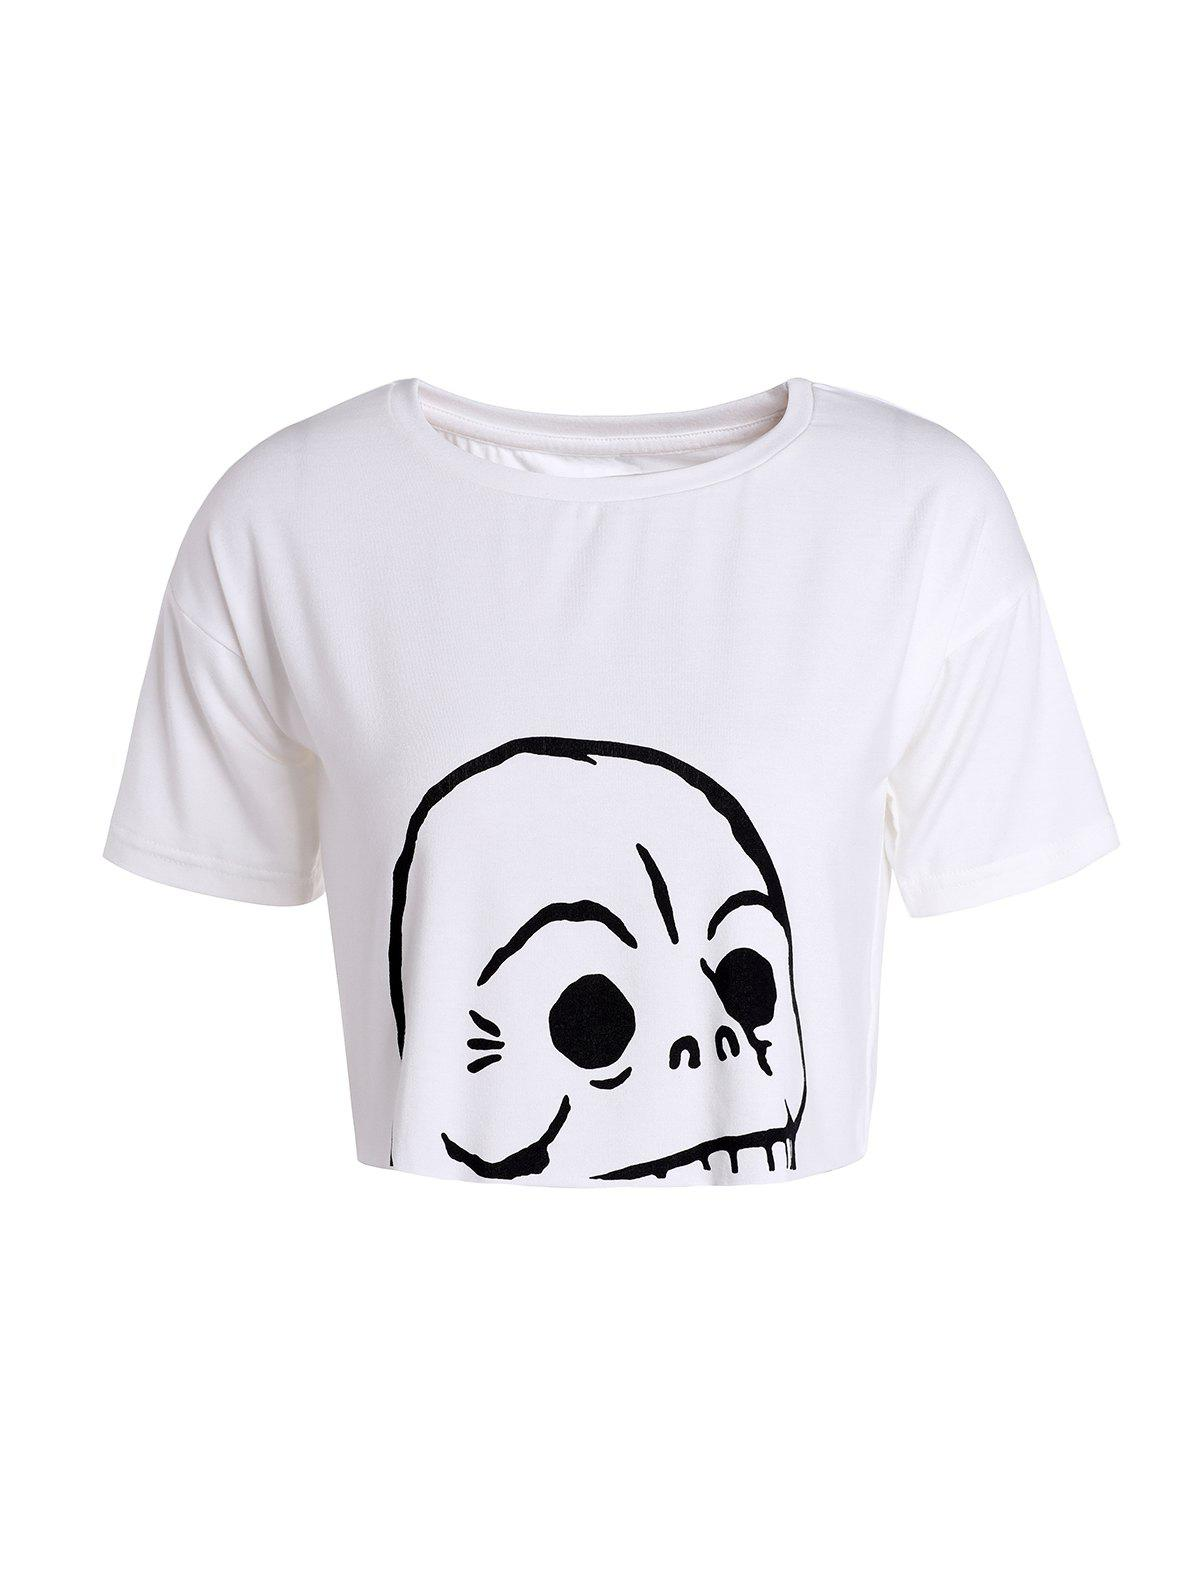 Skull Print Cropped Top - WHITE S